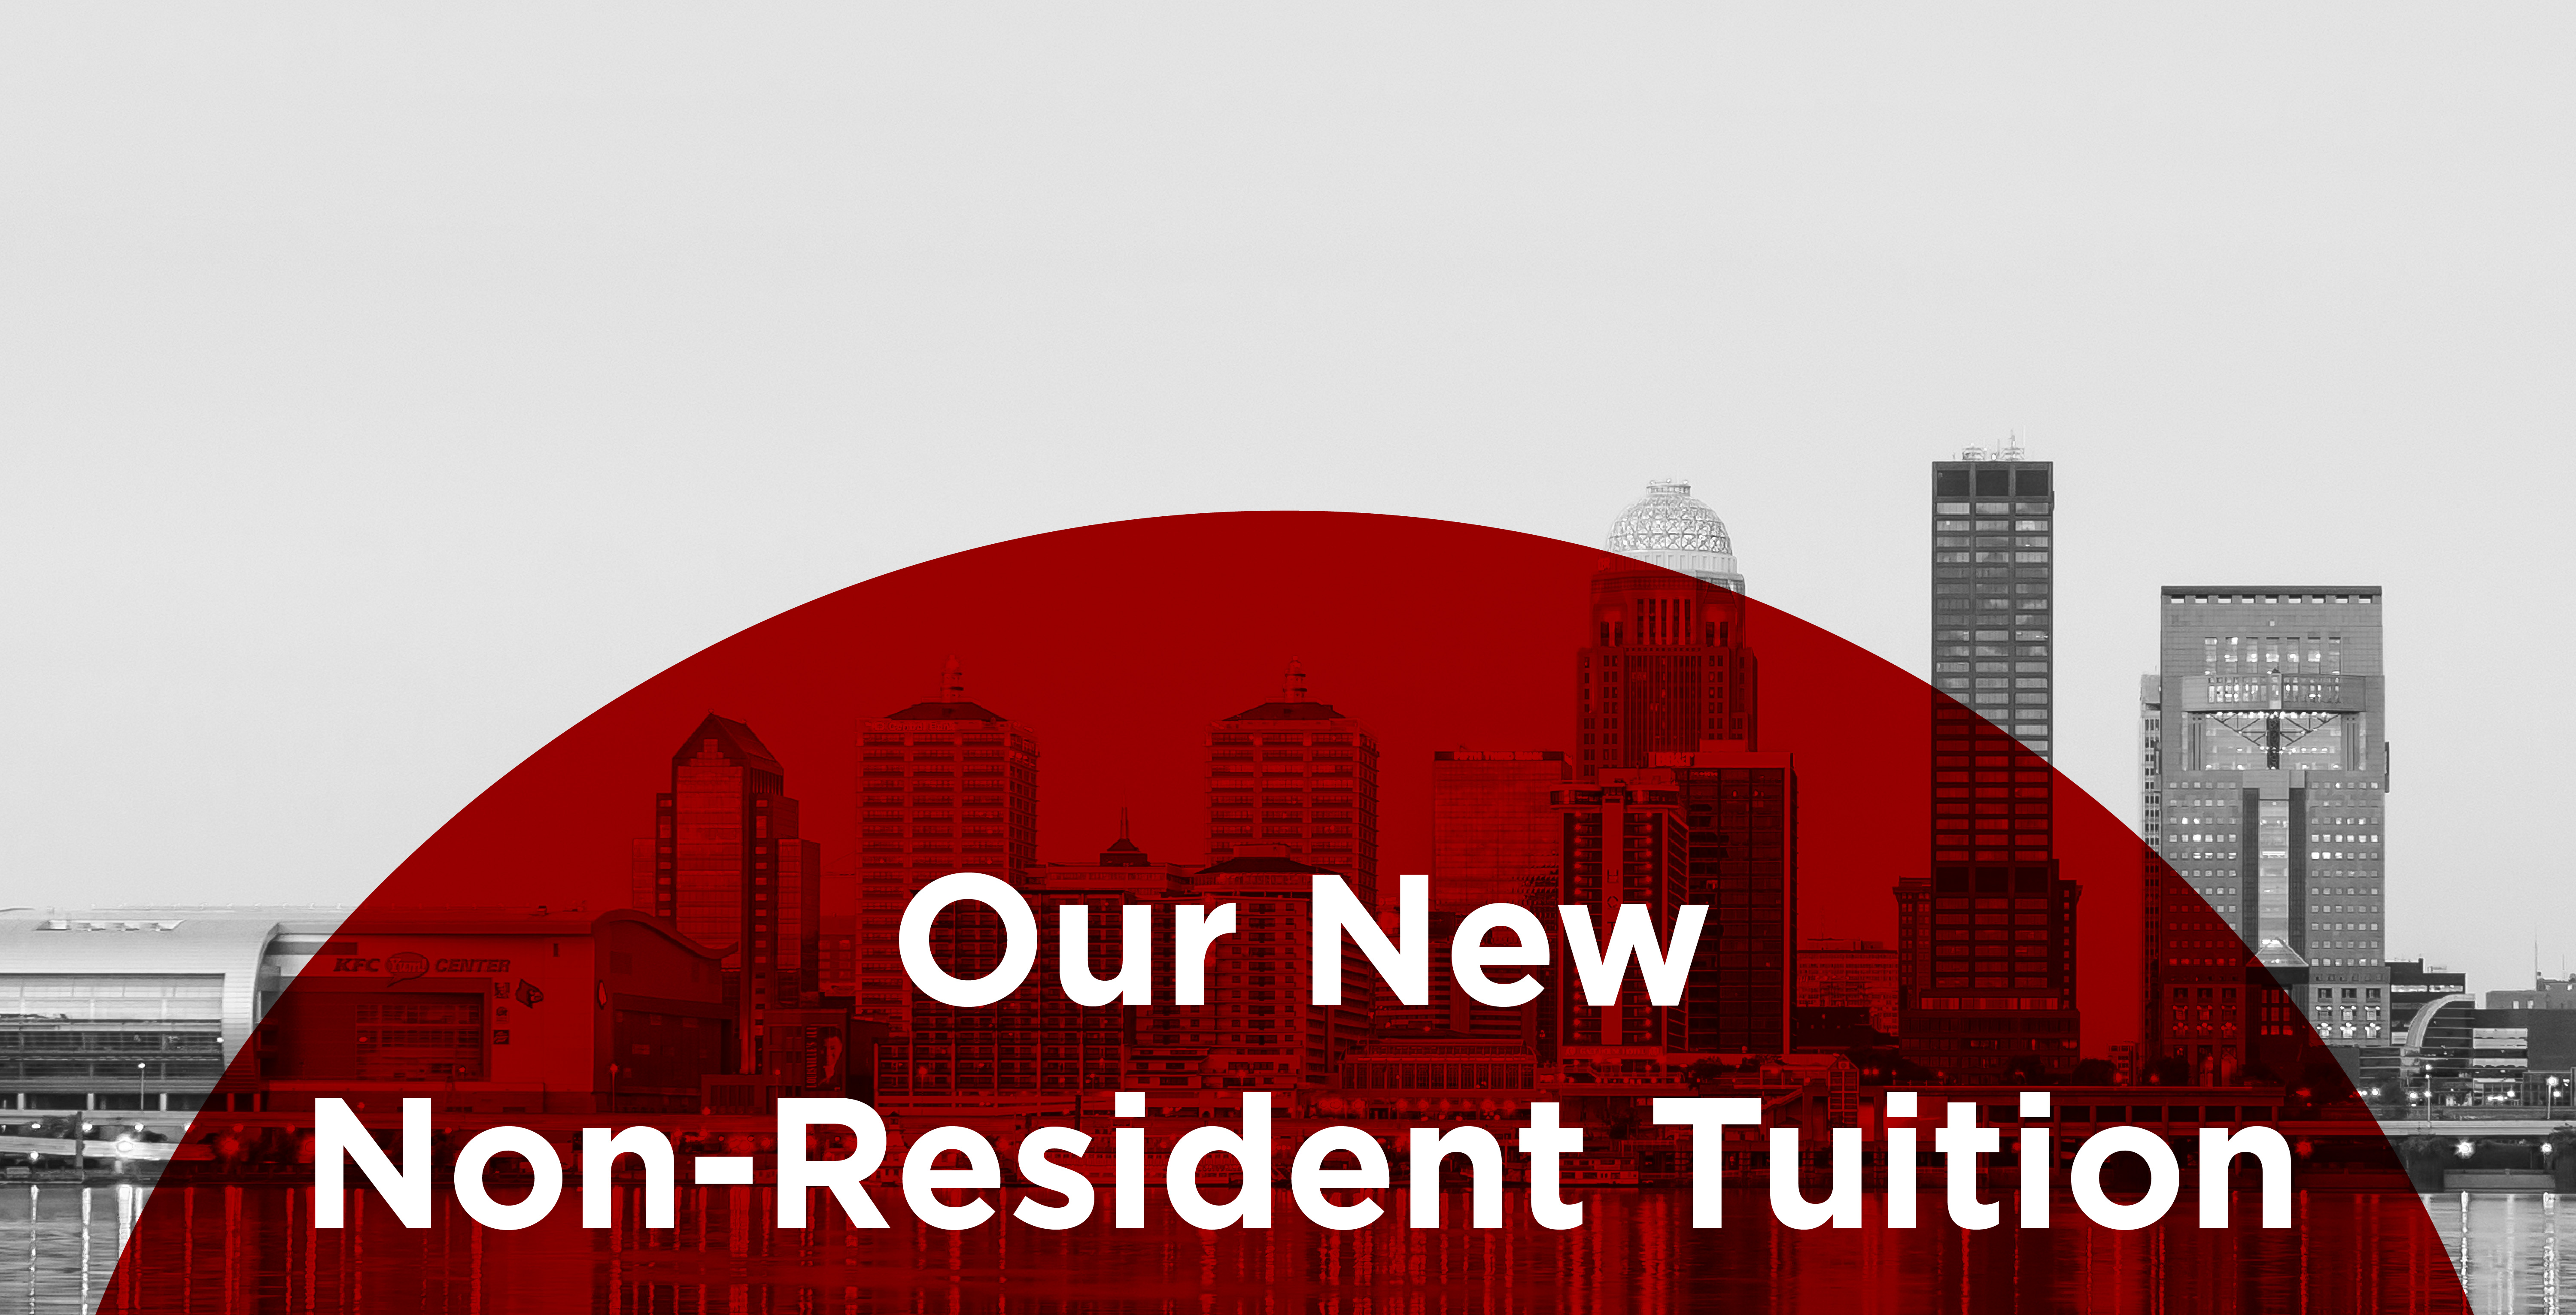 Image: Our New Non-Resident Tuition